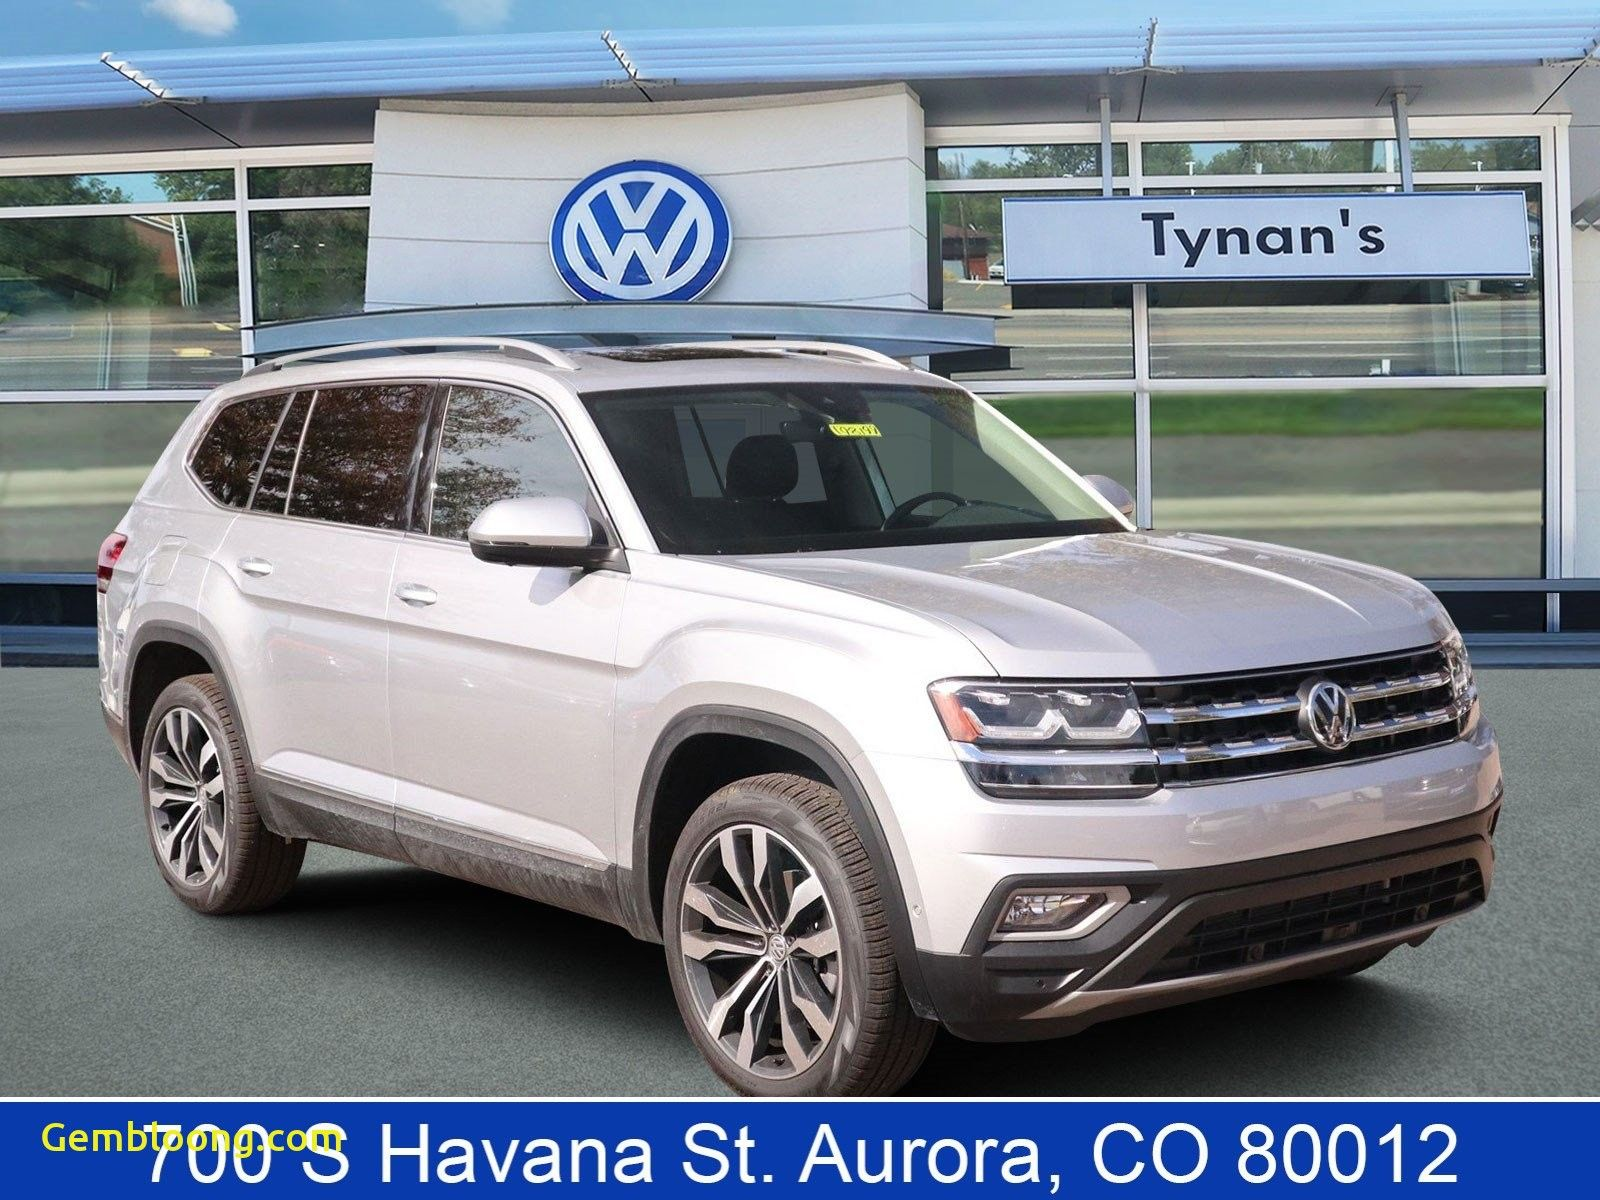 Best Cars Suv 2019 Awesome 2019 Volkswagen Atlas Sel Premium With 4motion Suv Luxury Suv Cars Small Suv Cars Best Small Suv